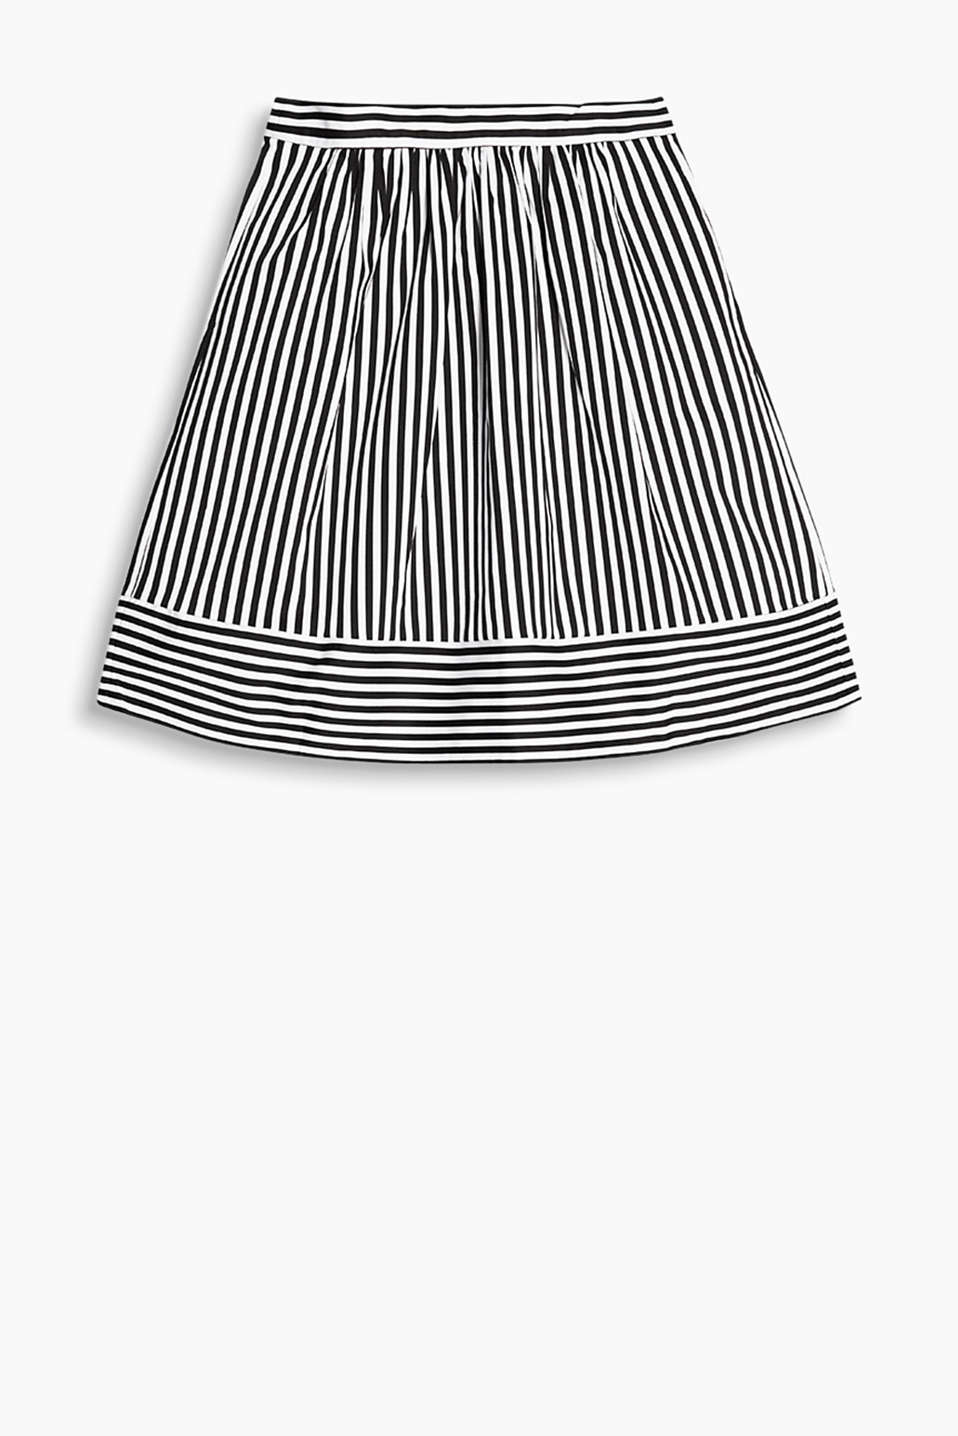 Smooth, blended cotton pleated skirt with slit pockets